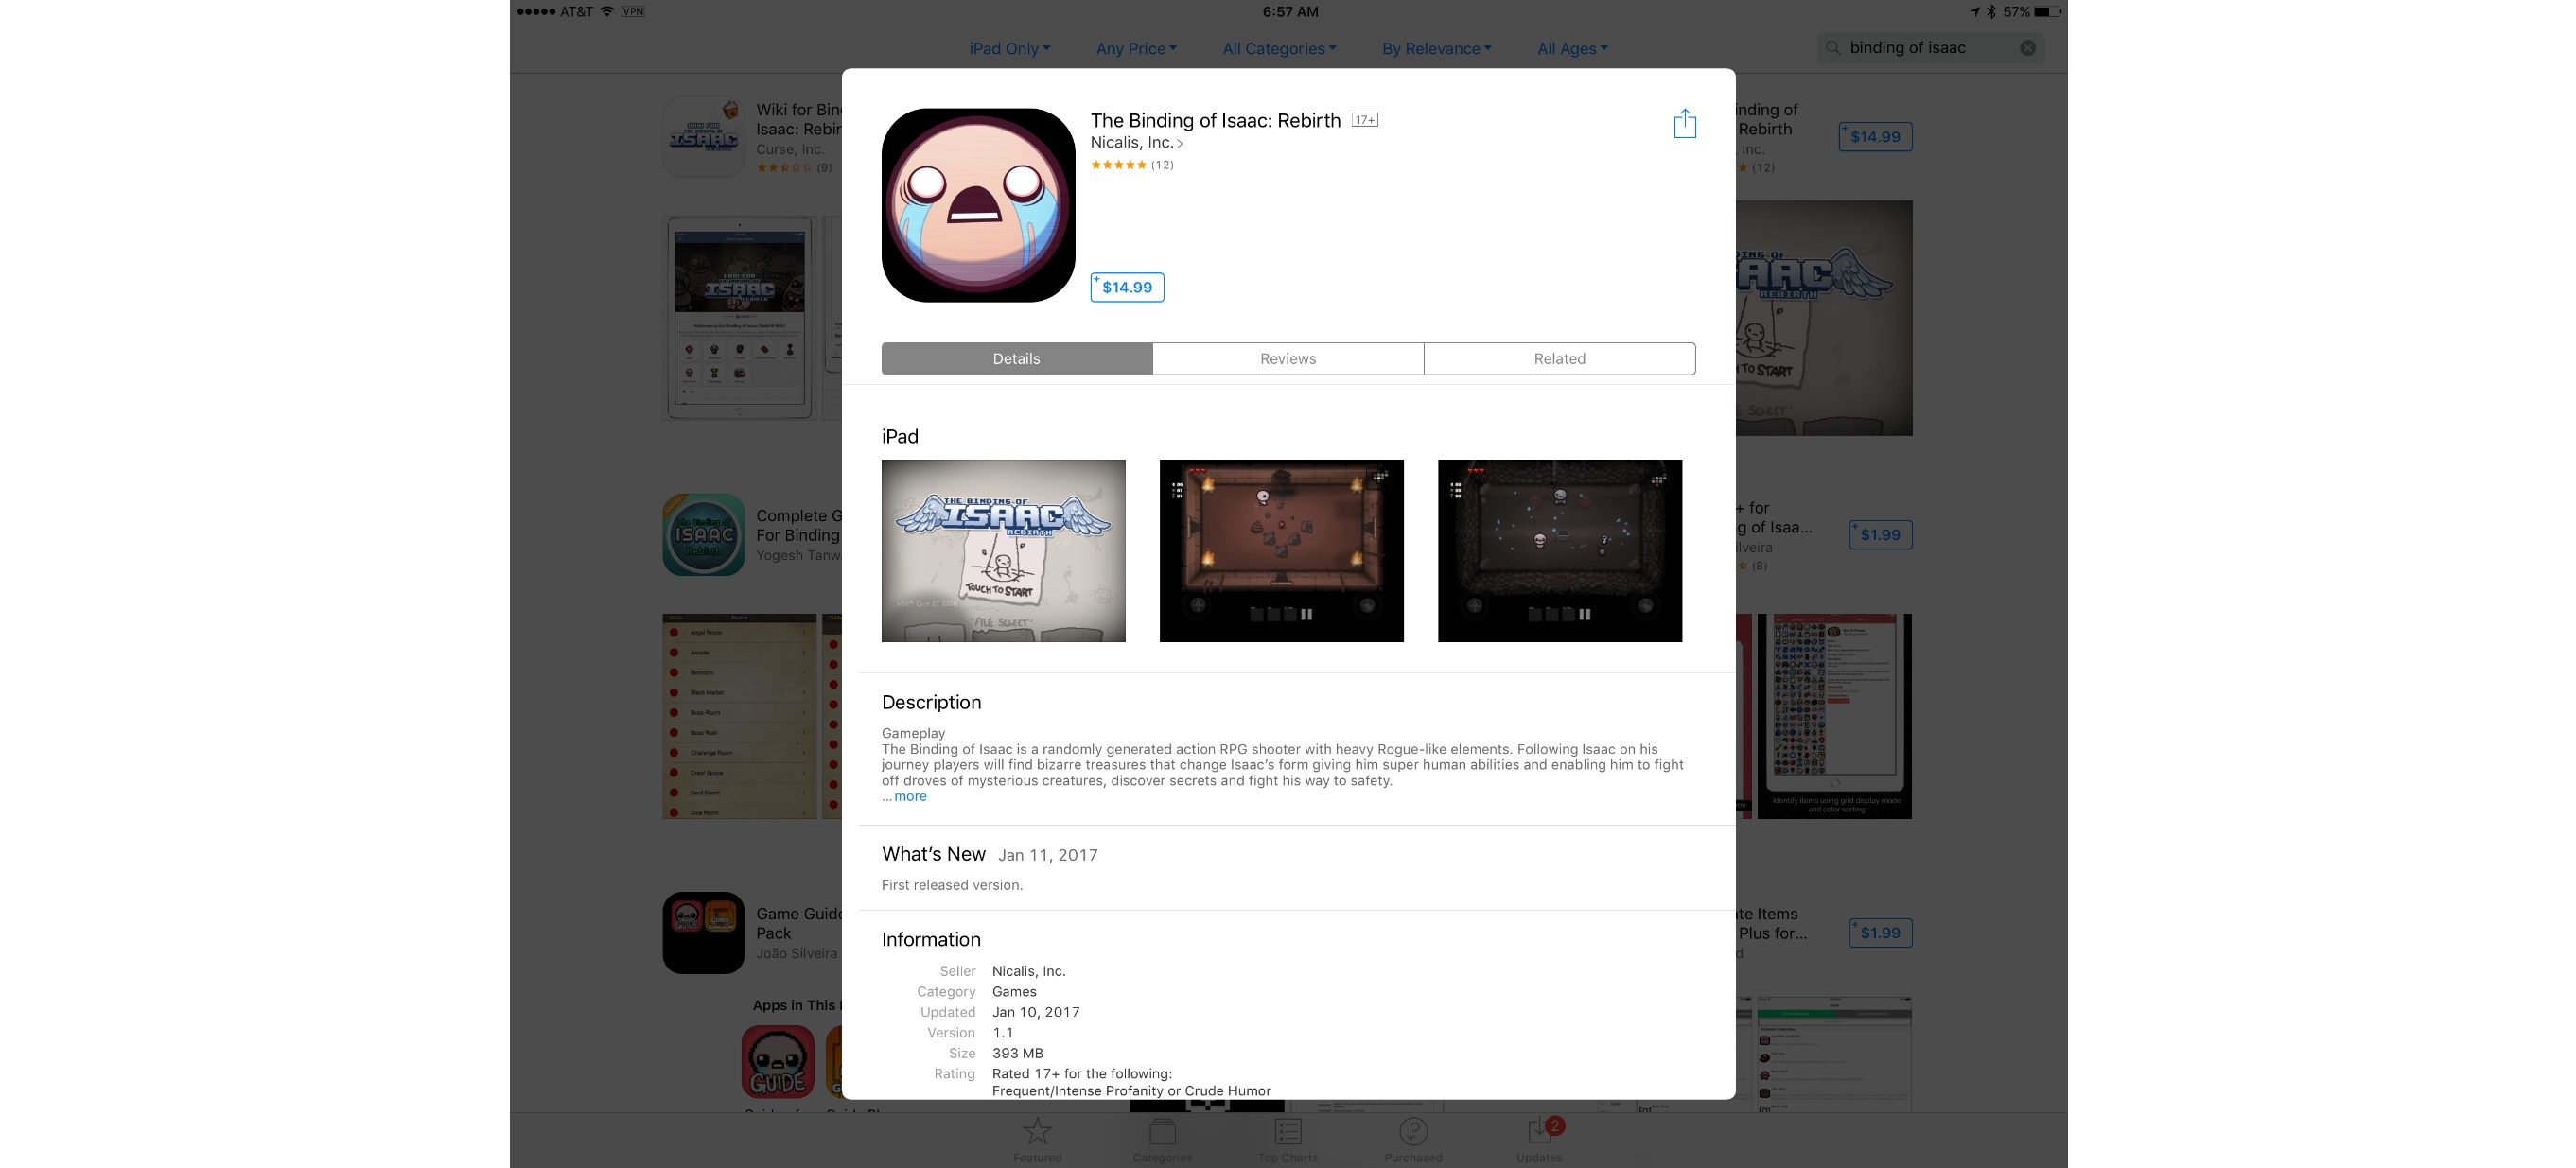 photo image The Binding of Isaac: Rebirth Released on iOS